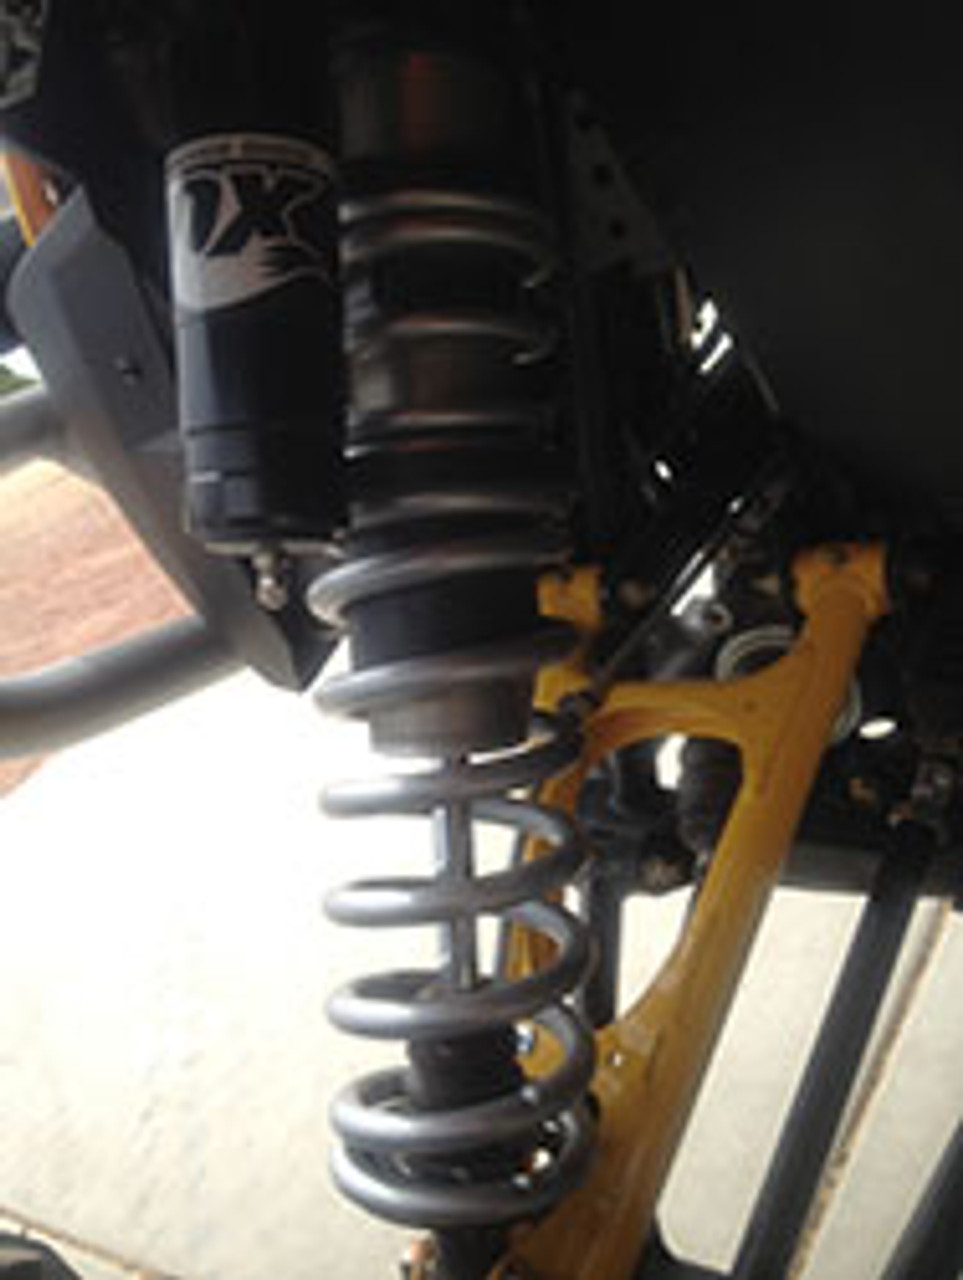 DRS kit on the front shock